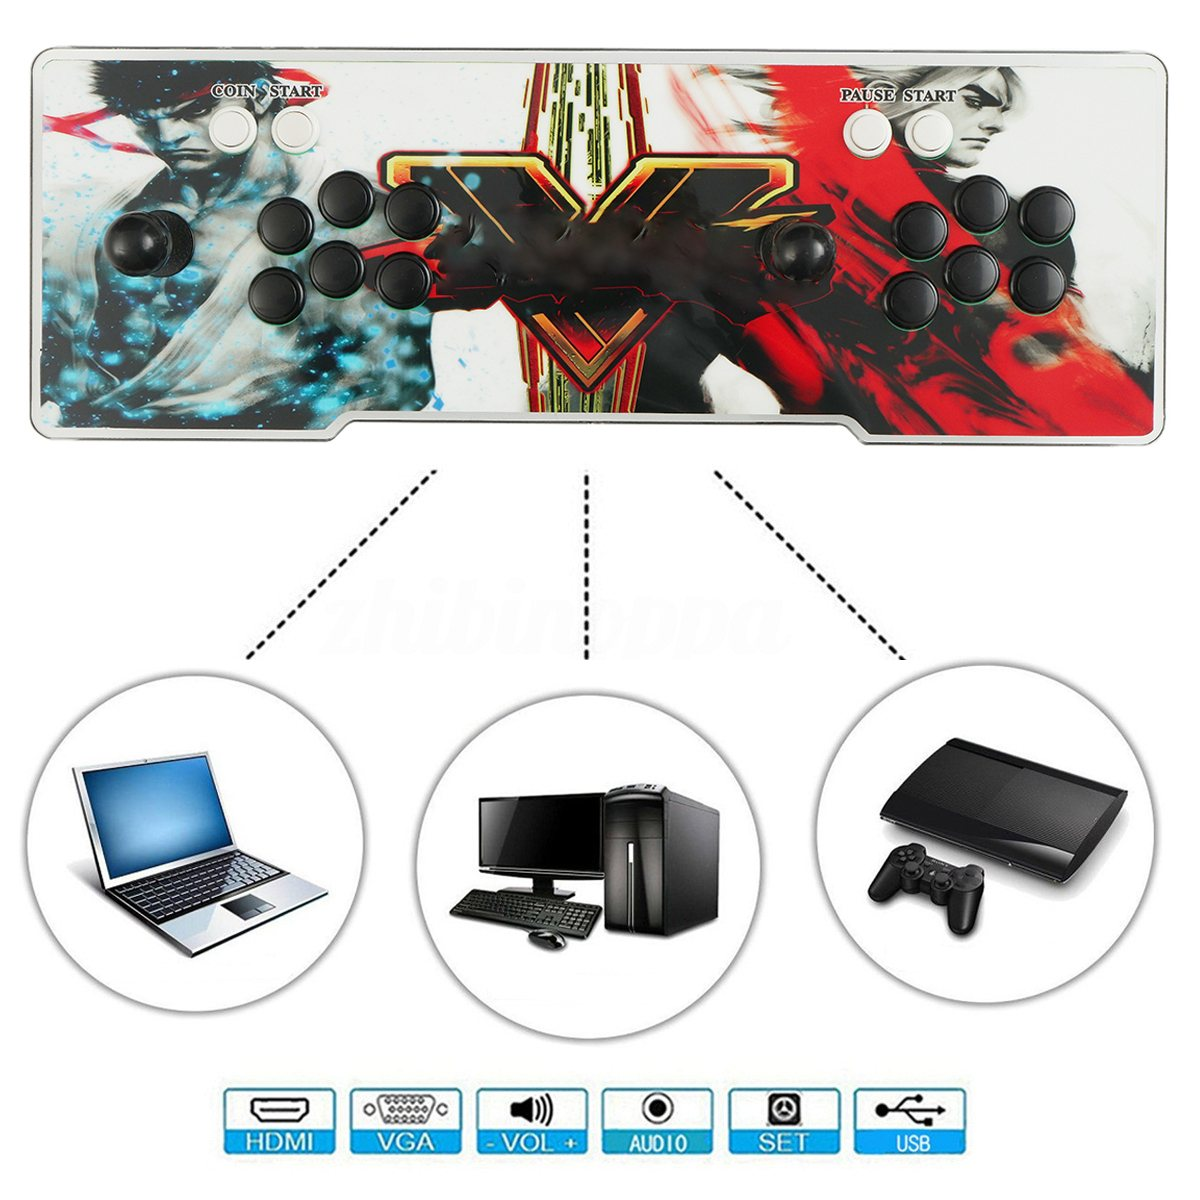 2000 In 1 Heroes Box 5 HDMI Arcade Classic Video Game Console Fight Games Gamepad HD VGA double joystick family arcade games console pandora s box 4s 815 in 1 game board